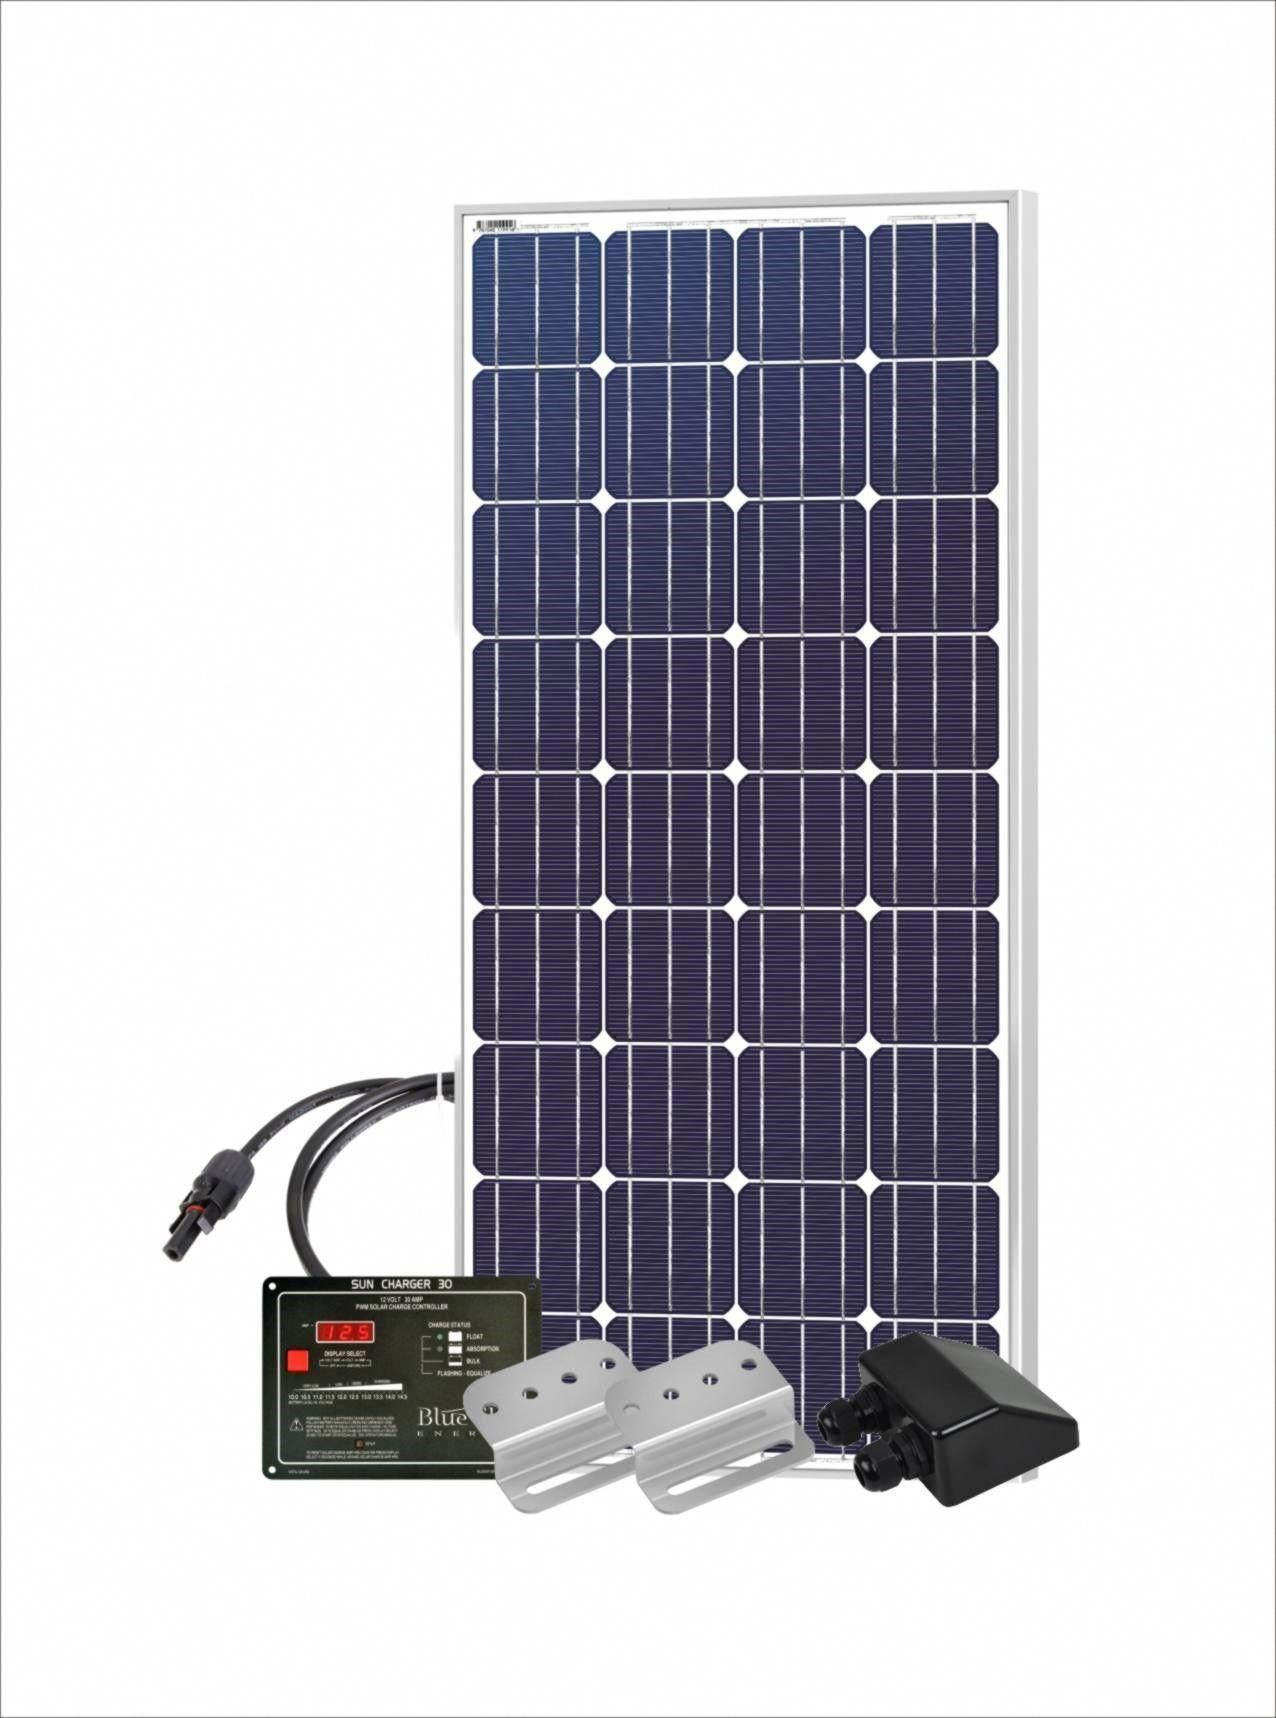 150 Watt 12 Volt Dc Rv Solar Panel Starter Kit With 150w Solar Panel Blue Sky Energy Sc30 Charge Controll In 2020 Rv Solar Panels Best Solar Panels Solar Energy Panels